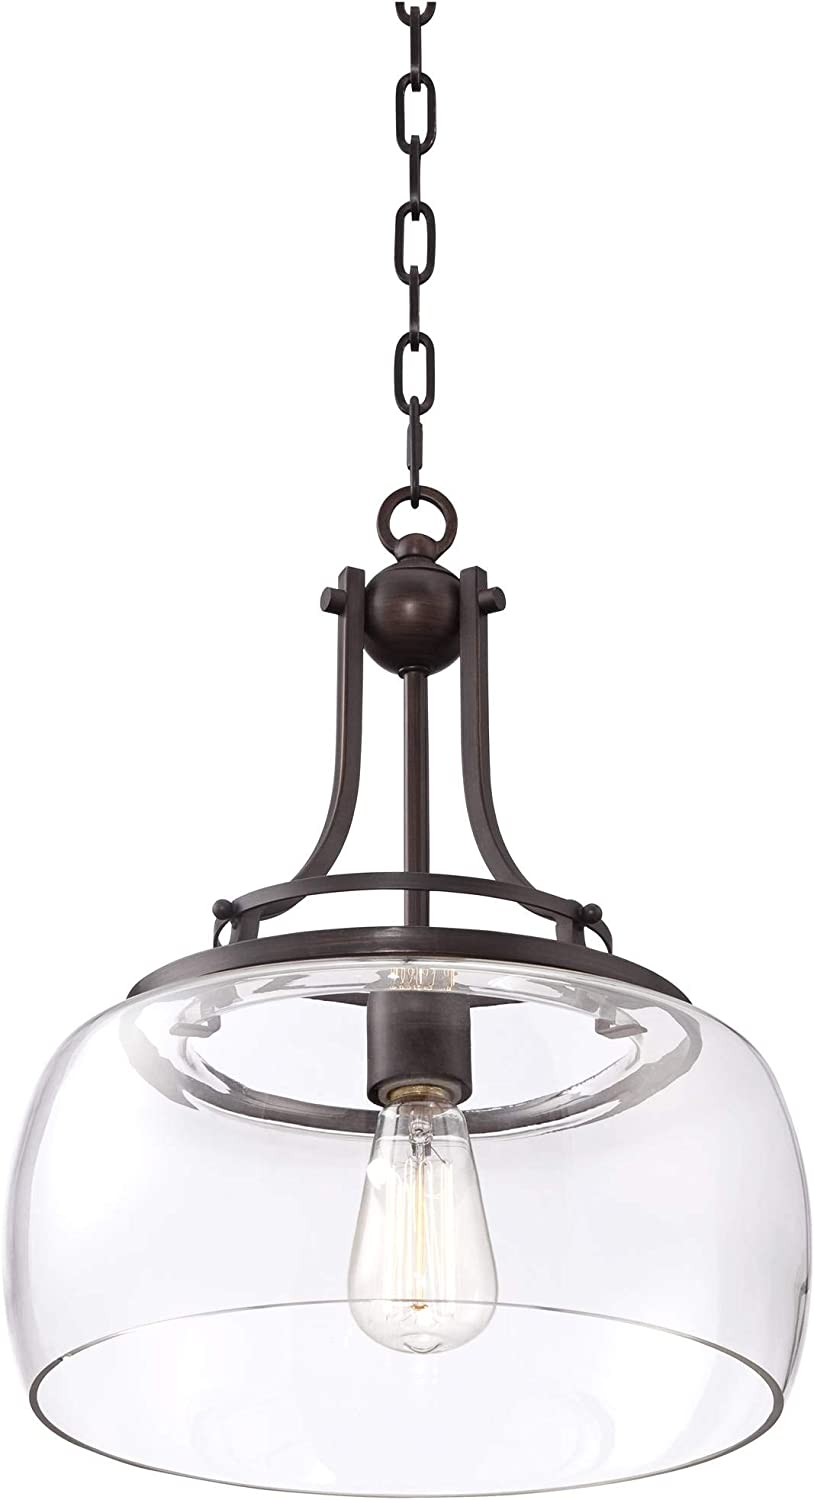 """Charleston Bronze Pendant Light 13 1/2\"""" Wide Industrial Rustic Clear Glass Fixture for Kitchen Island Dining Room - Franklin Iron Works 61tIh8fGLgLSL1500_"""